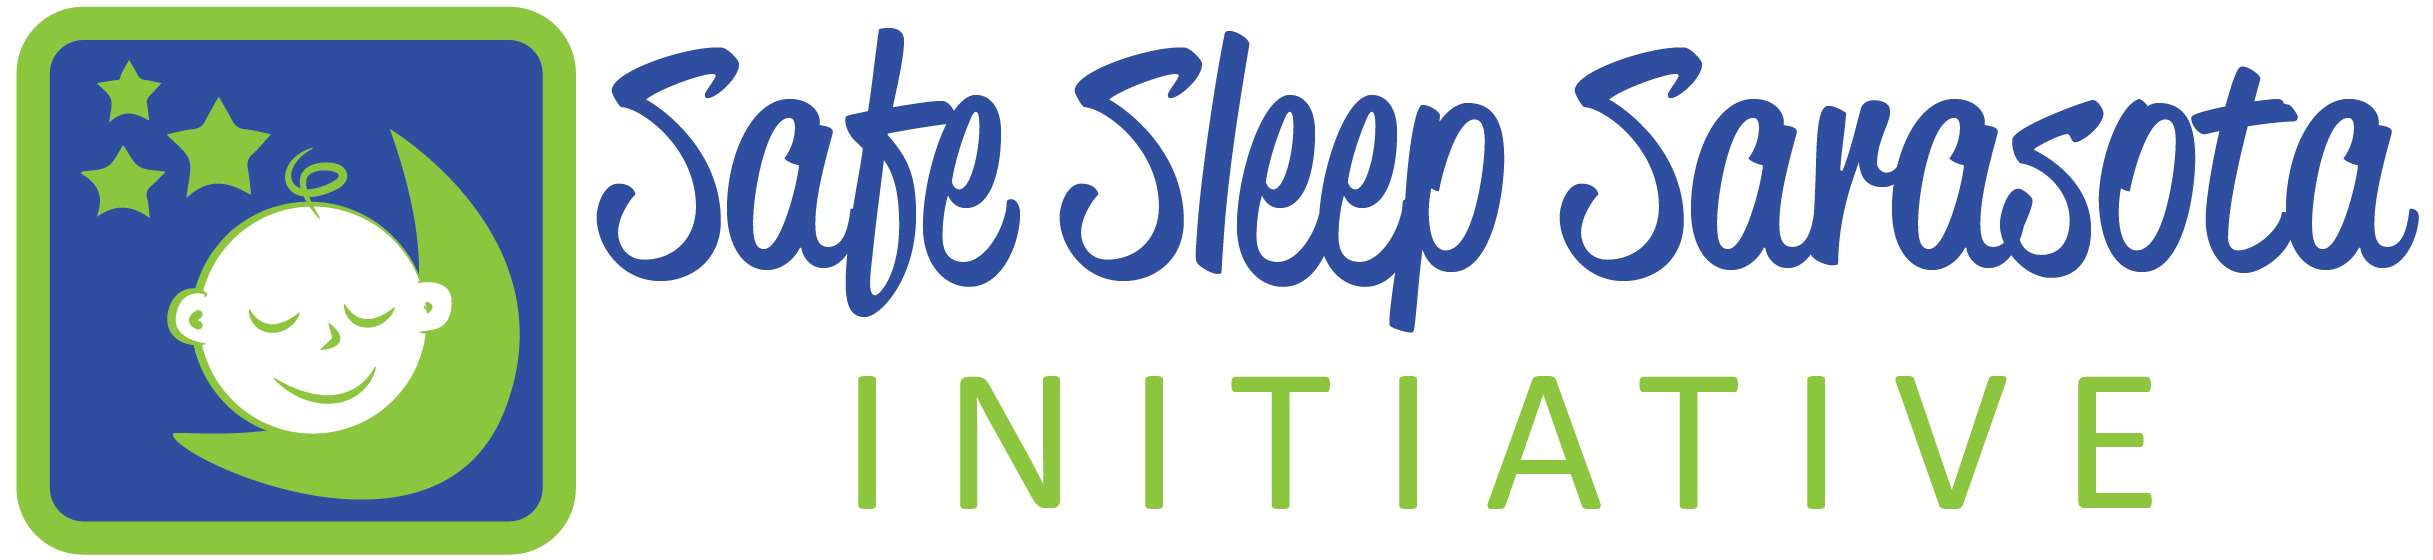 Safe Sleep Initiative Logos-01